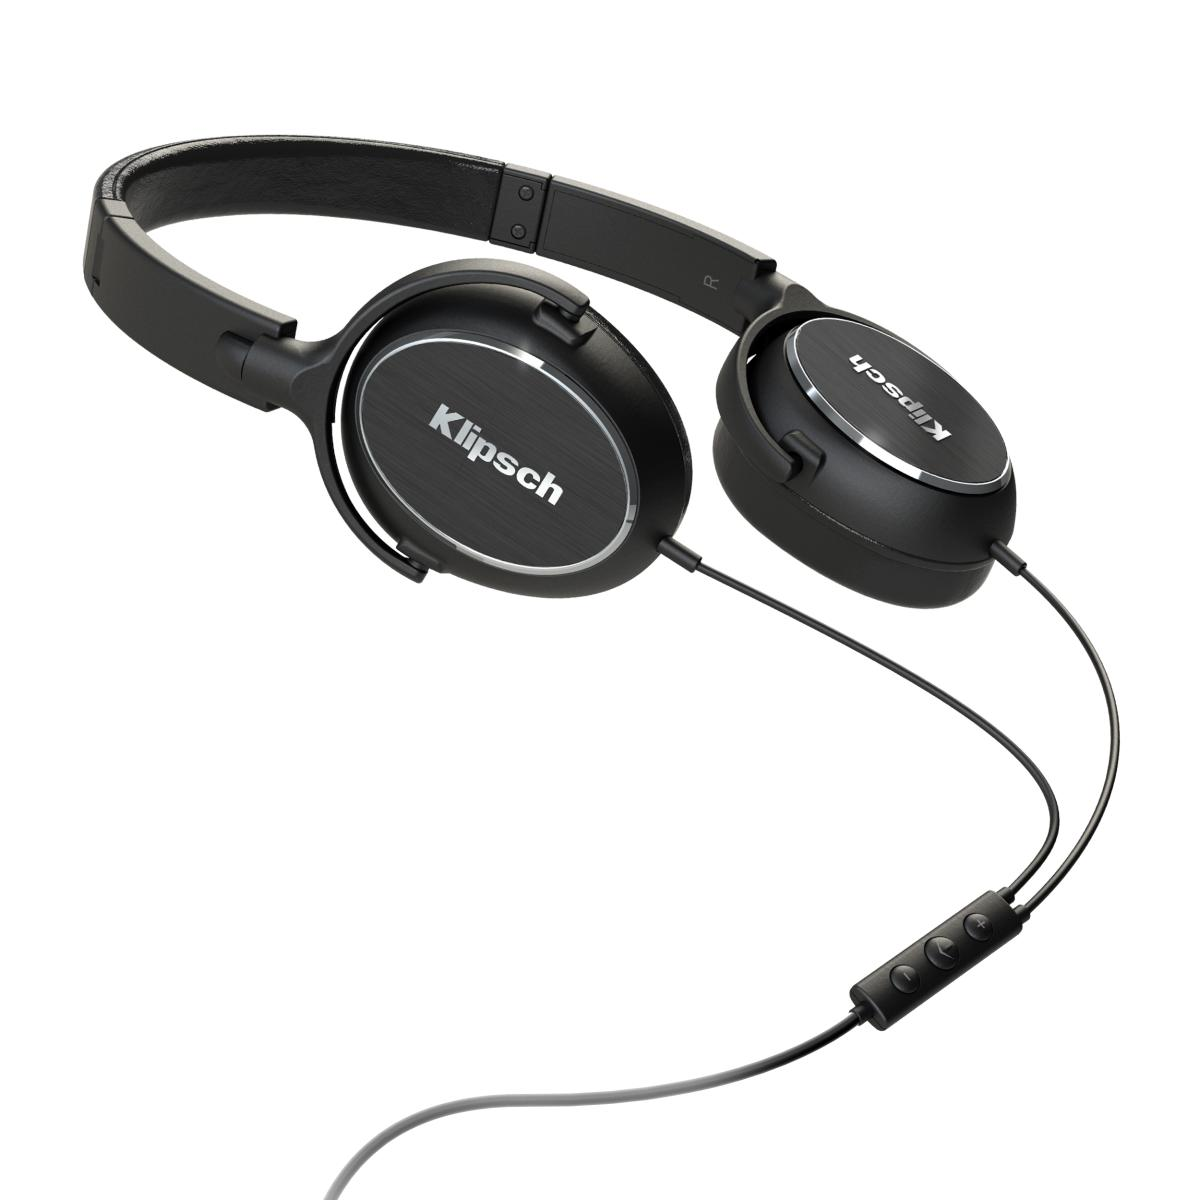 Powieksz do pelnego rozmiaru Klipsz, Klipsh, Klipch, Klipsch Image One II Black, Image-One II Black,